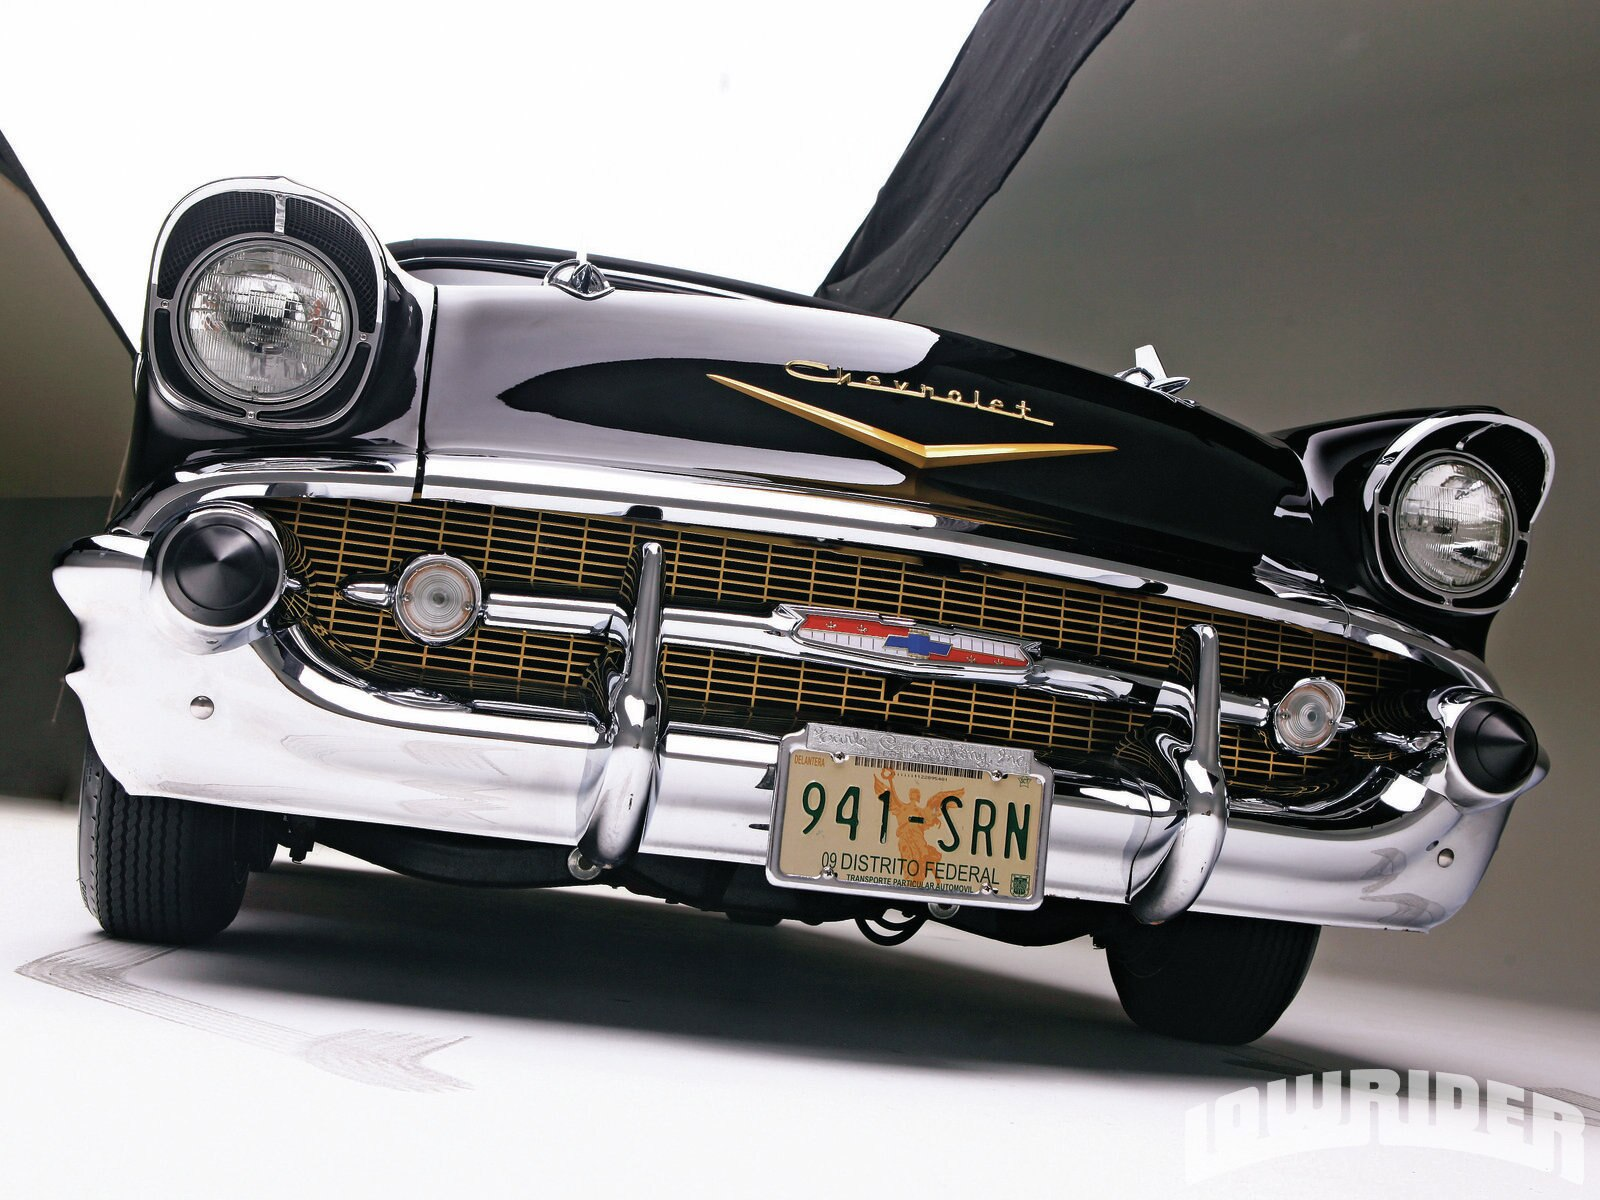 1210-lrmp-01-o-the-psychological-power-from-the-color-black-chevy-bel-air.JPG1